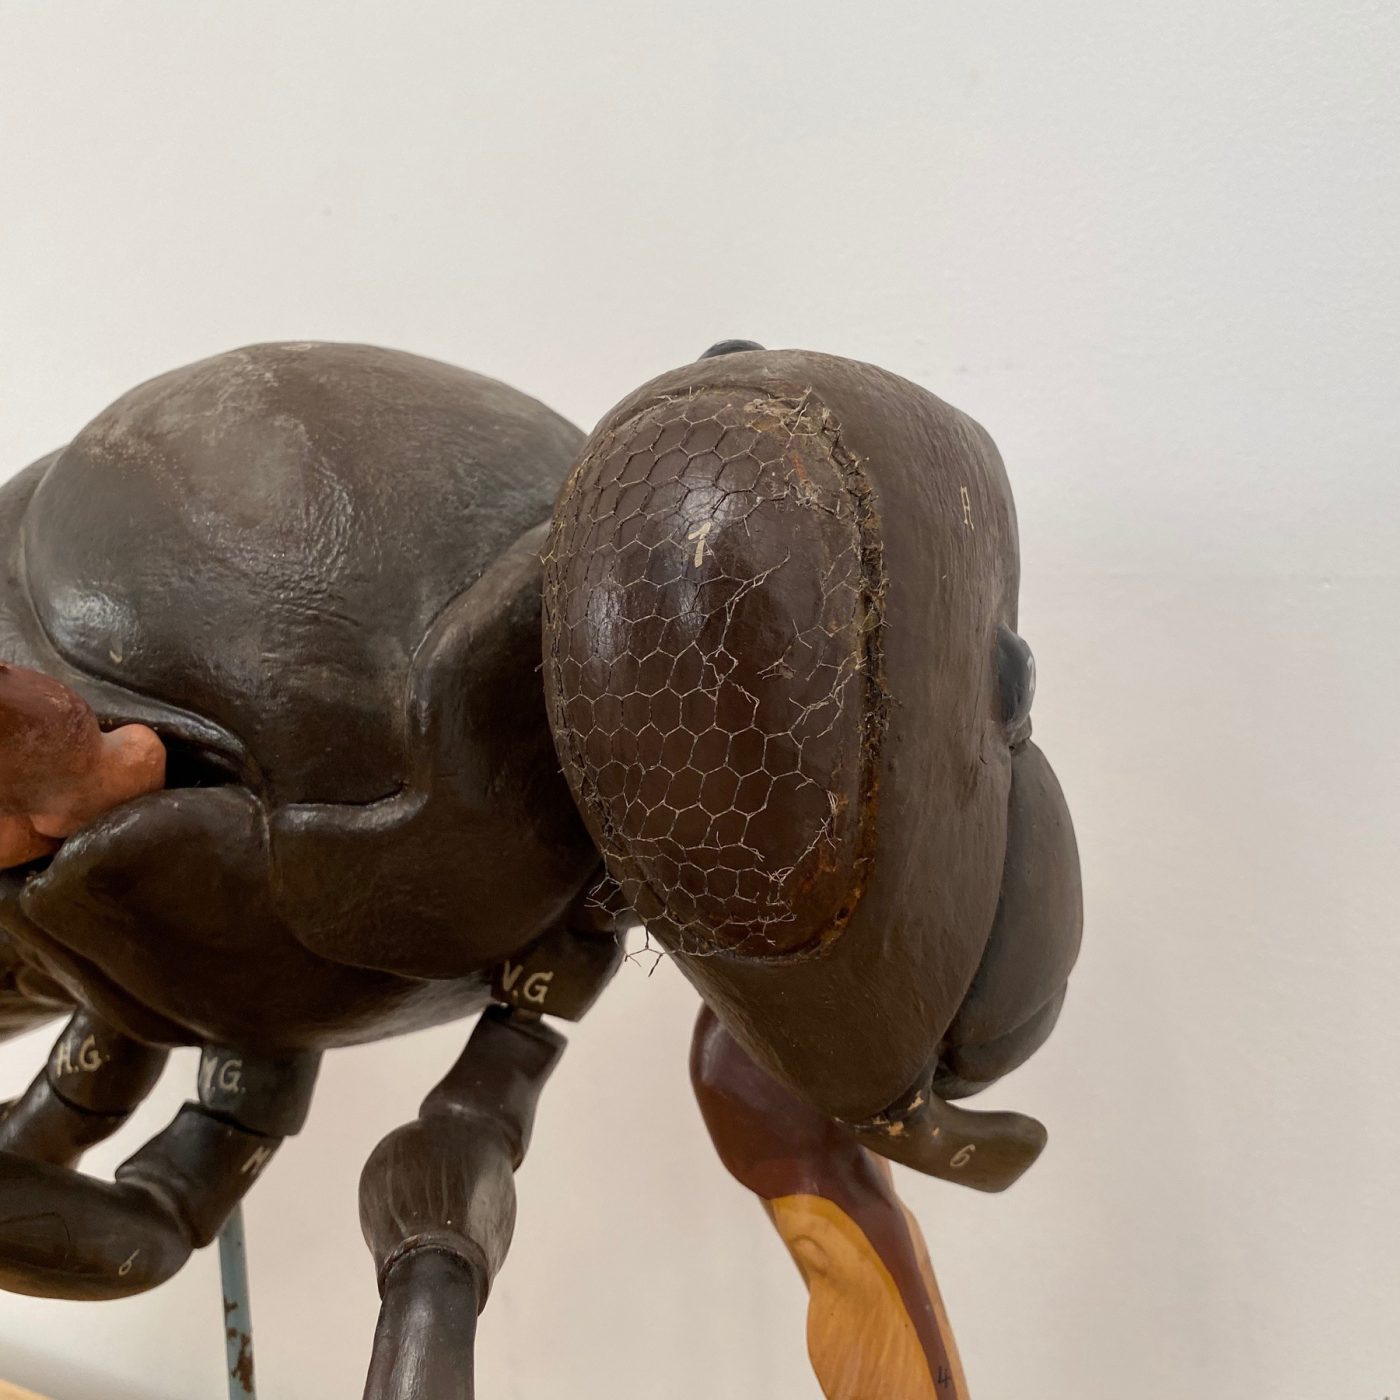 fly-skin-statue0006